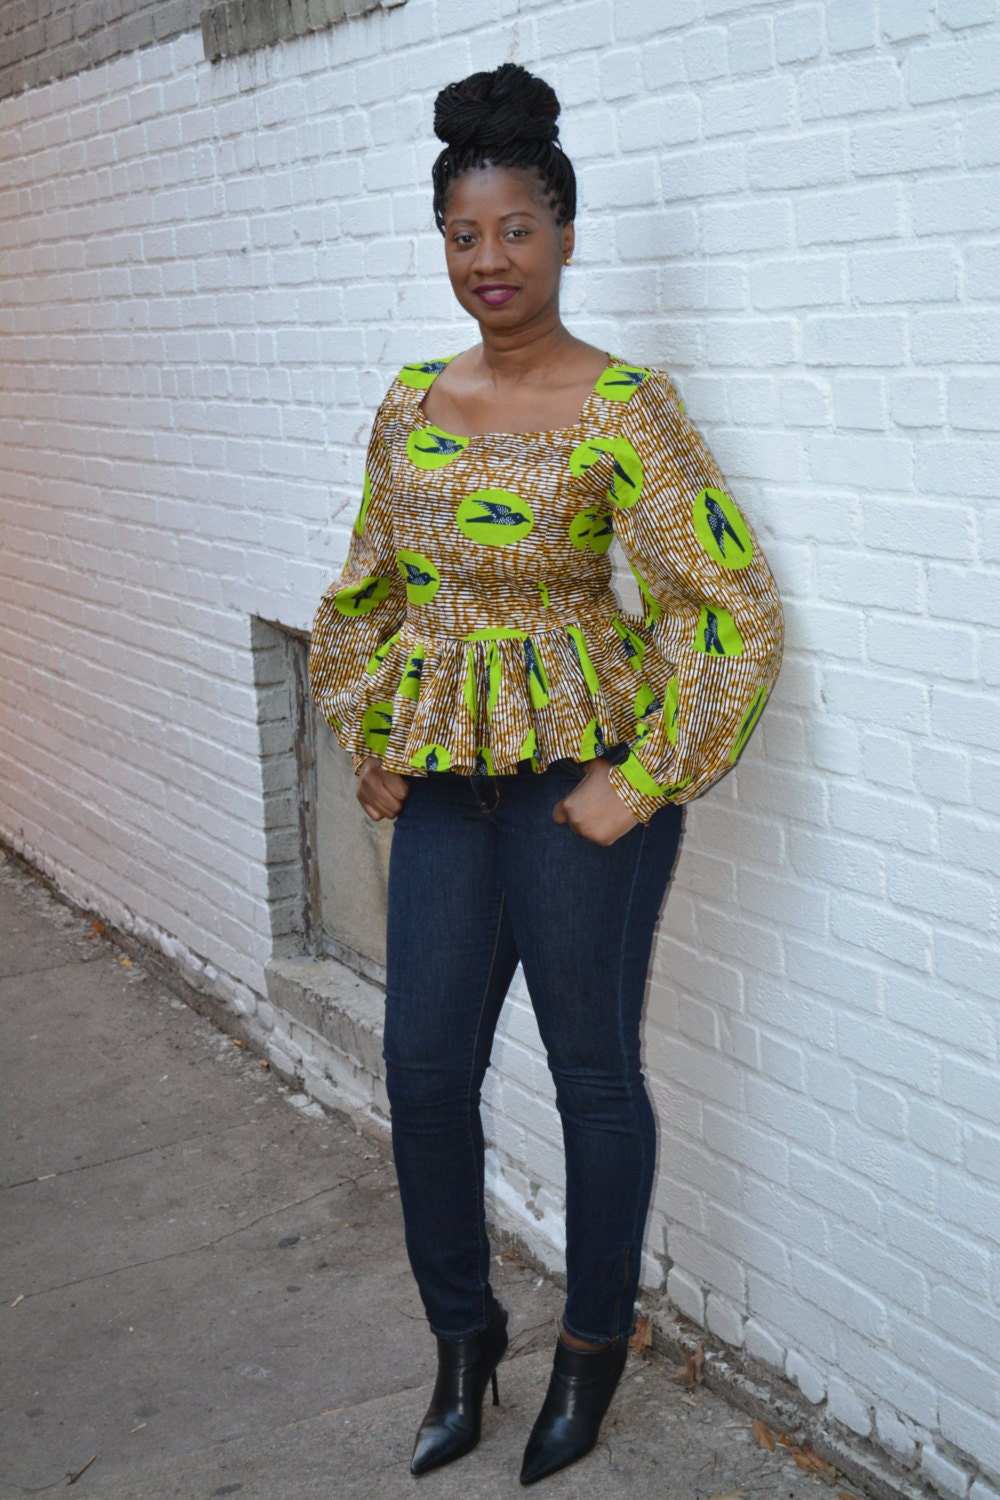 Women's African Clothing Women's Skirts African Pant Suits African Dresses Tops & More Jumpsuits Dashikis Plus Size Clothing Plus Size Clothing. View as Grid List. Sort by. Display. per page. King-Sized Traditional Dashiki. The Dashiki that Flatters Your Size Create a stunning silhouette, no matter what your size! % cotton. 33